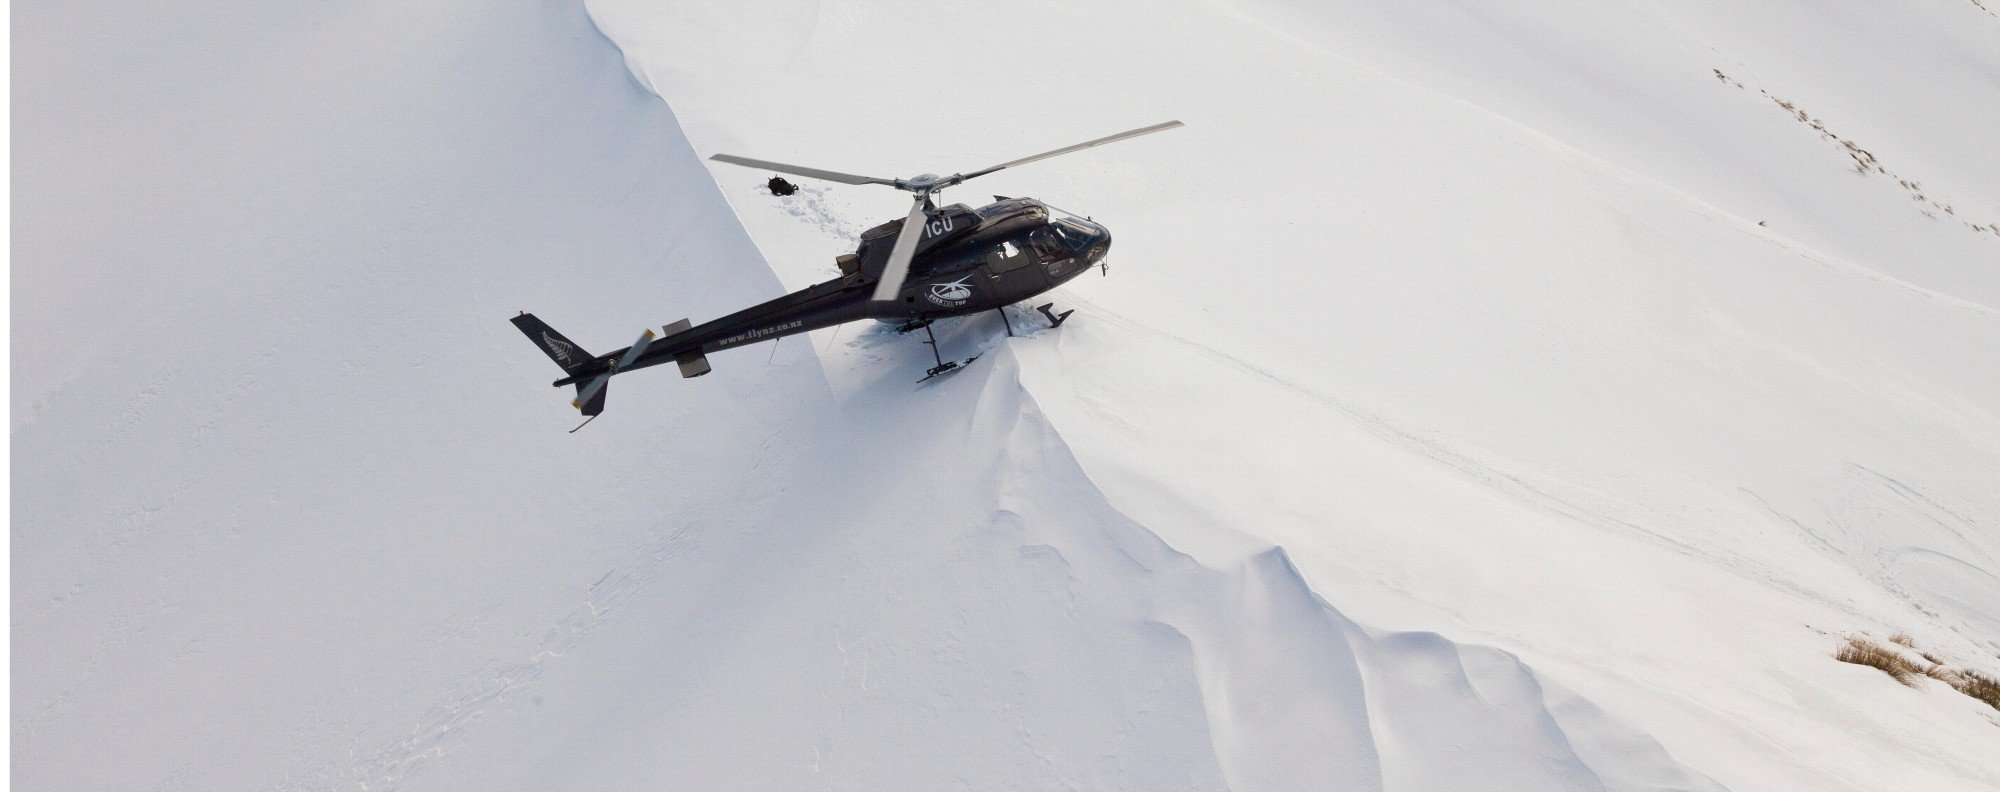 Heli-skiing in New Zealand.